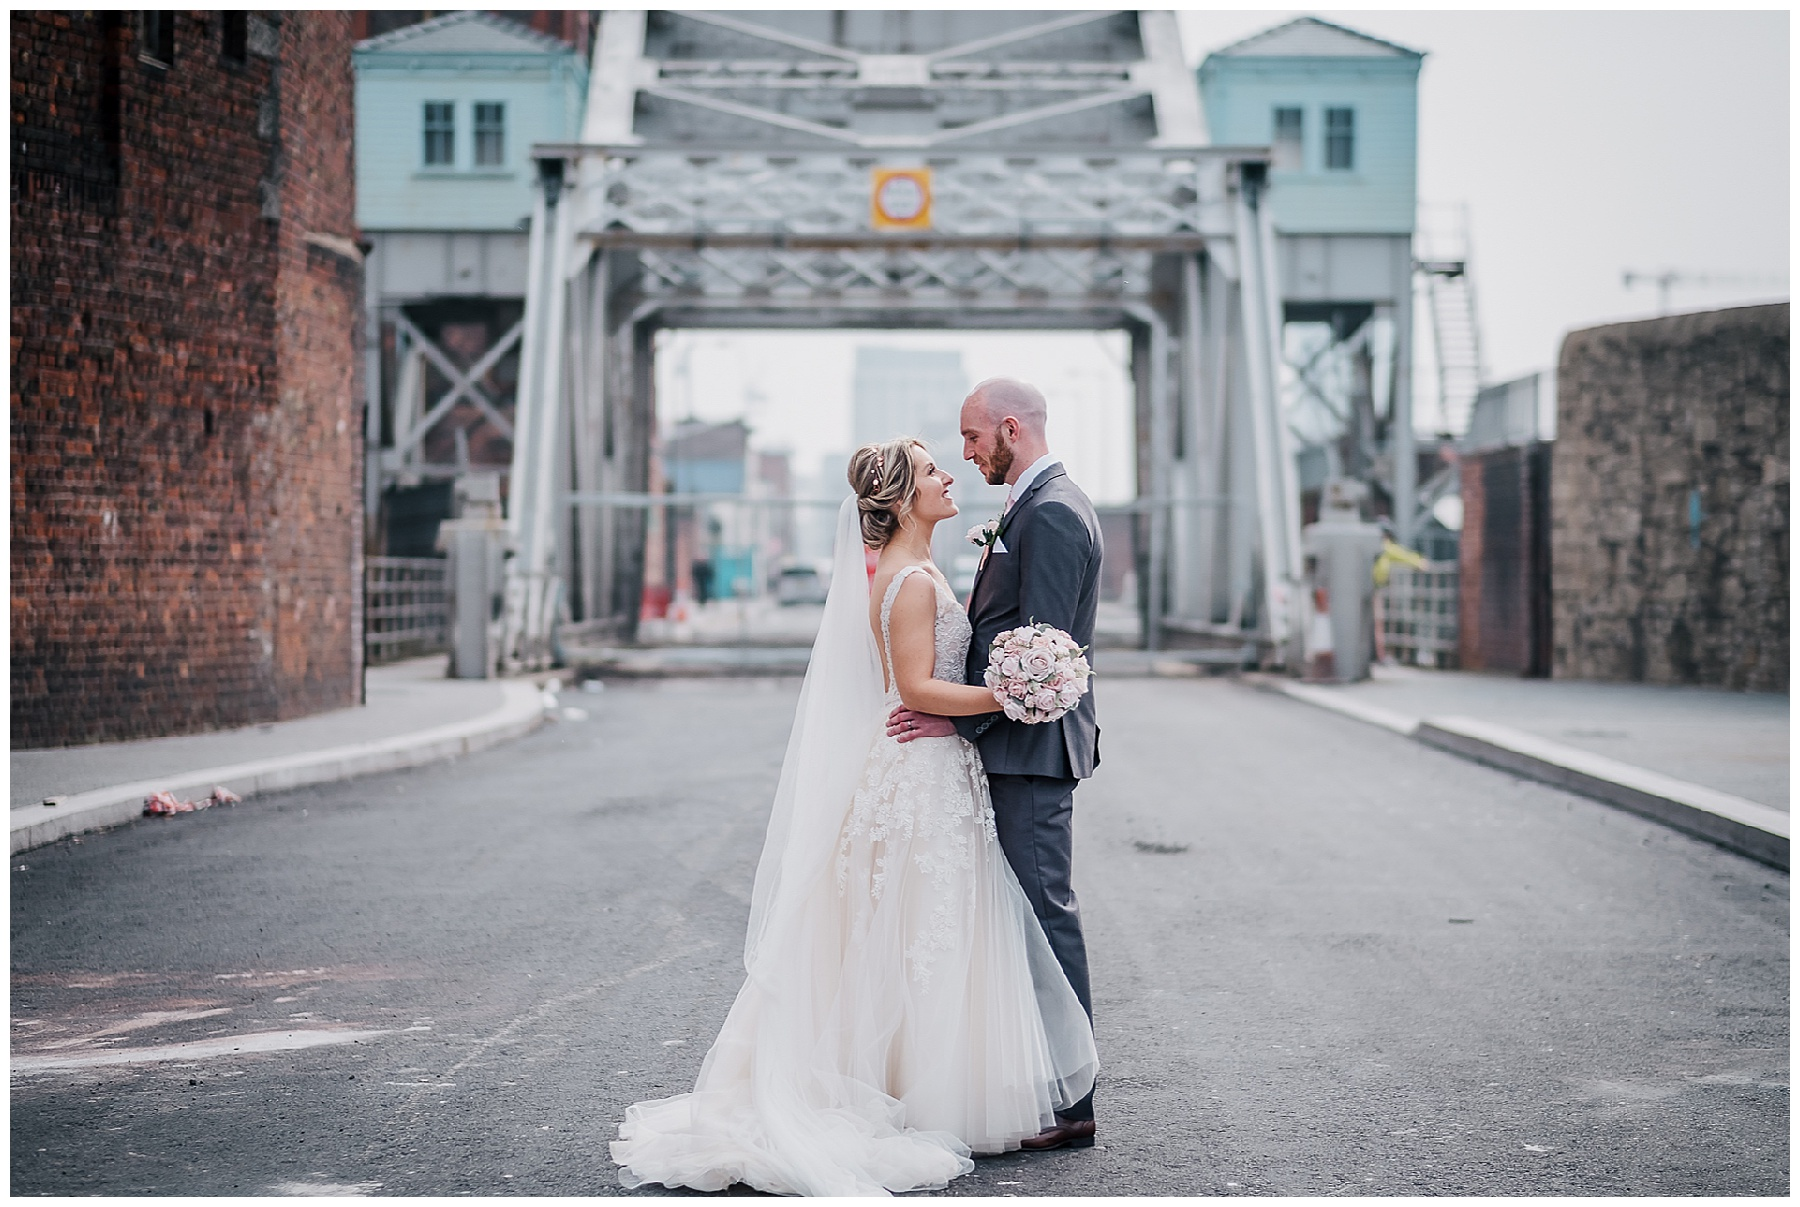 City Wedding Lushness at The Titanic Hotel